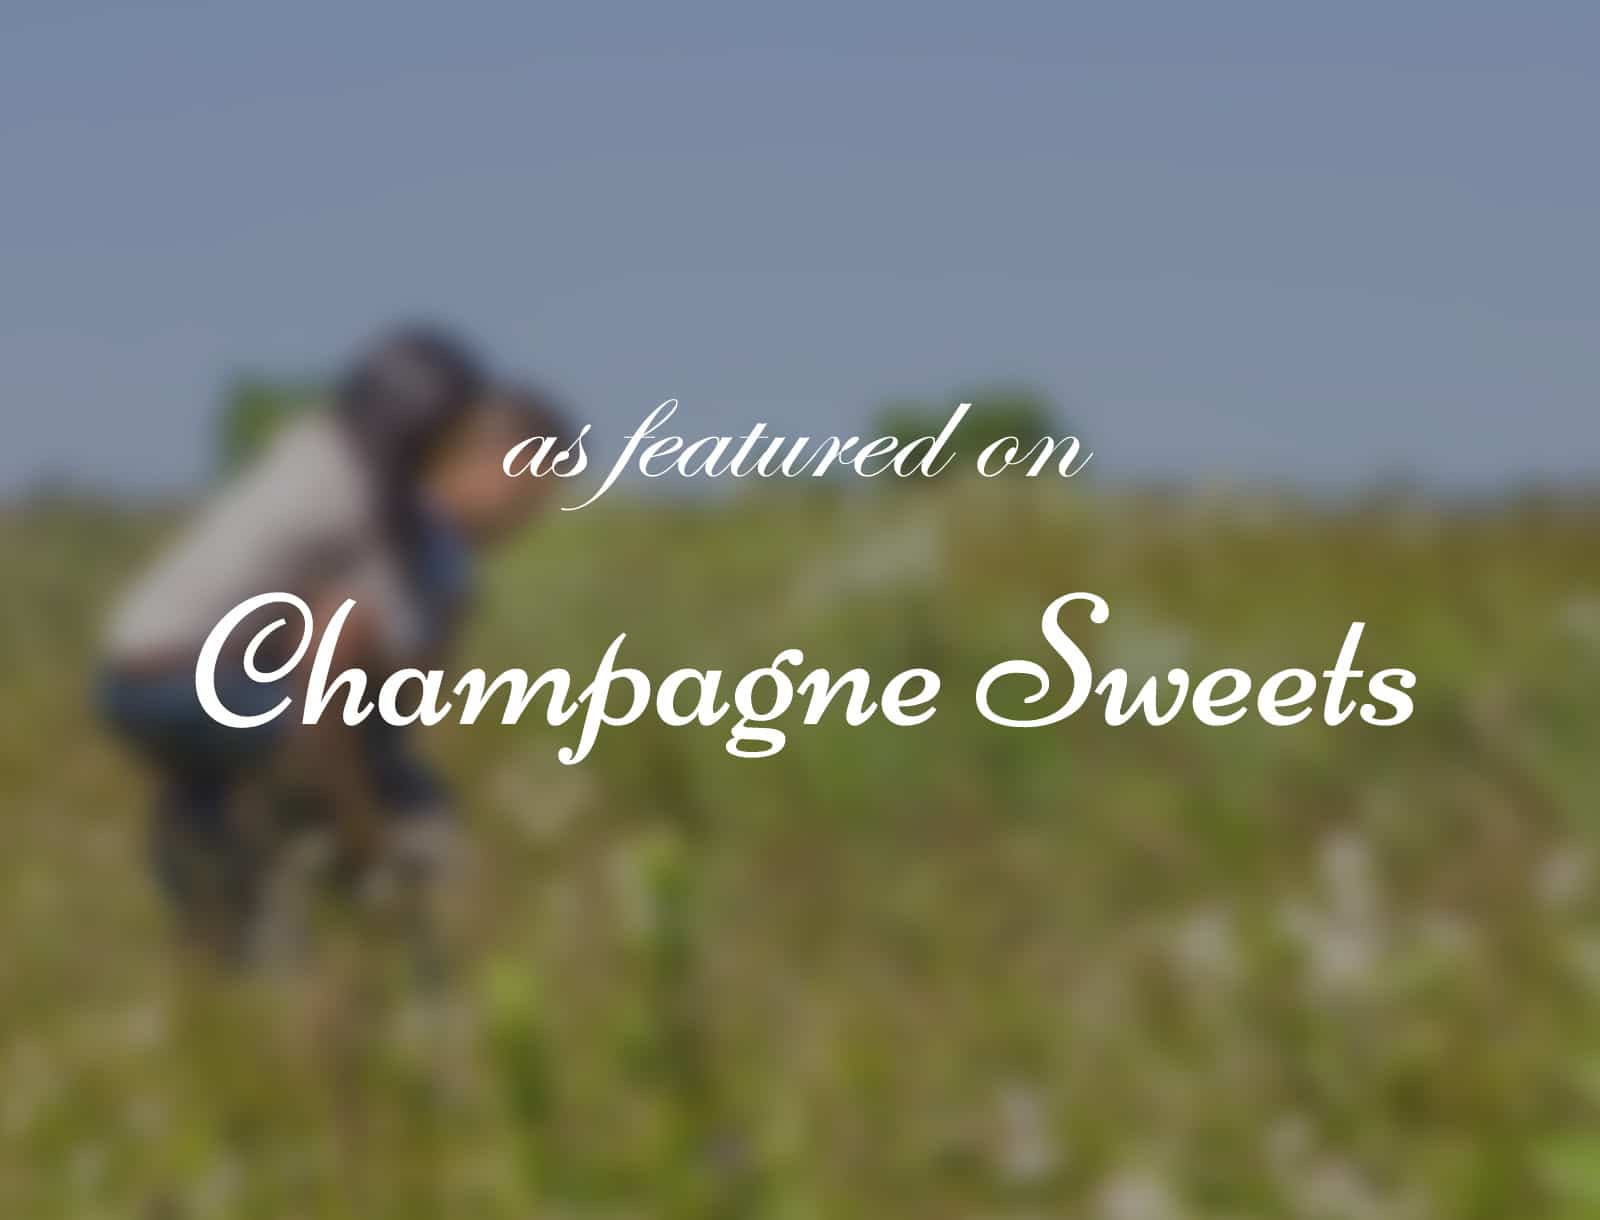 Published on Champagne Sweets: Craig & Leyna's Engagement Shoot